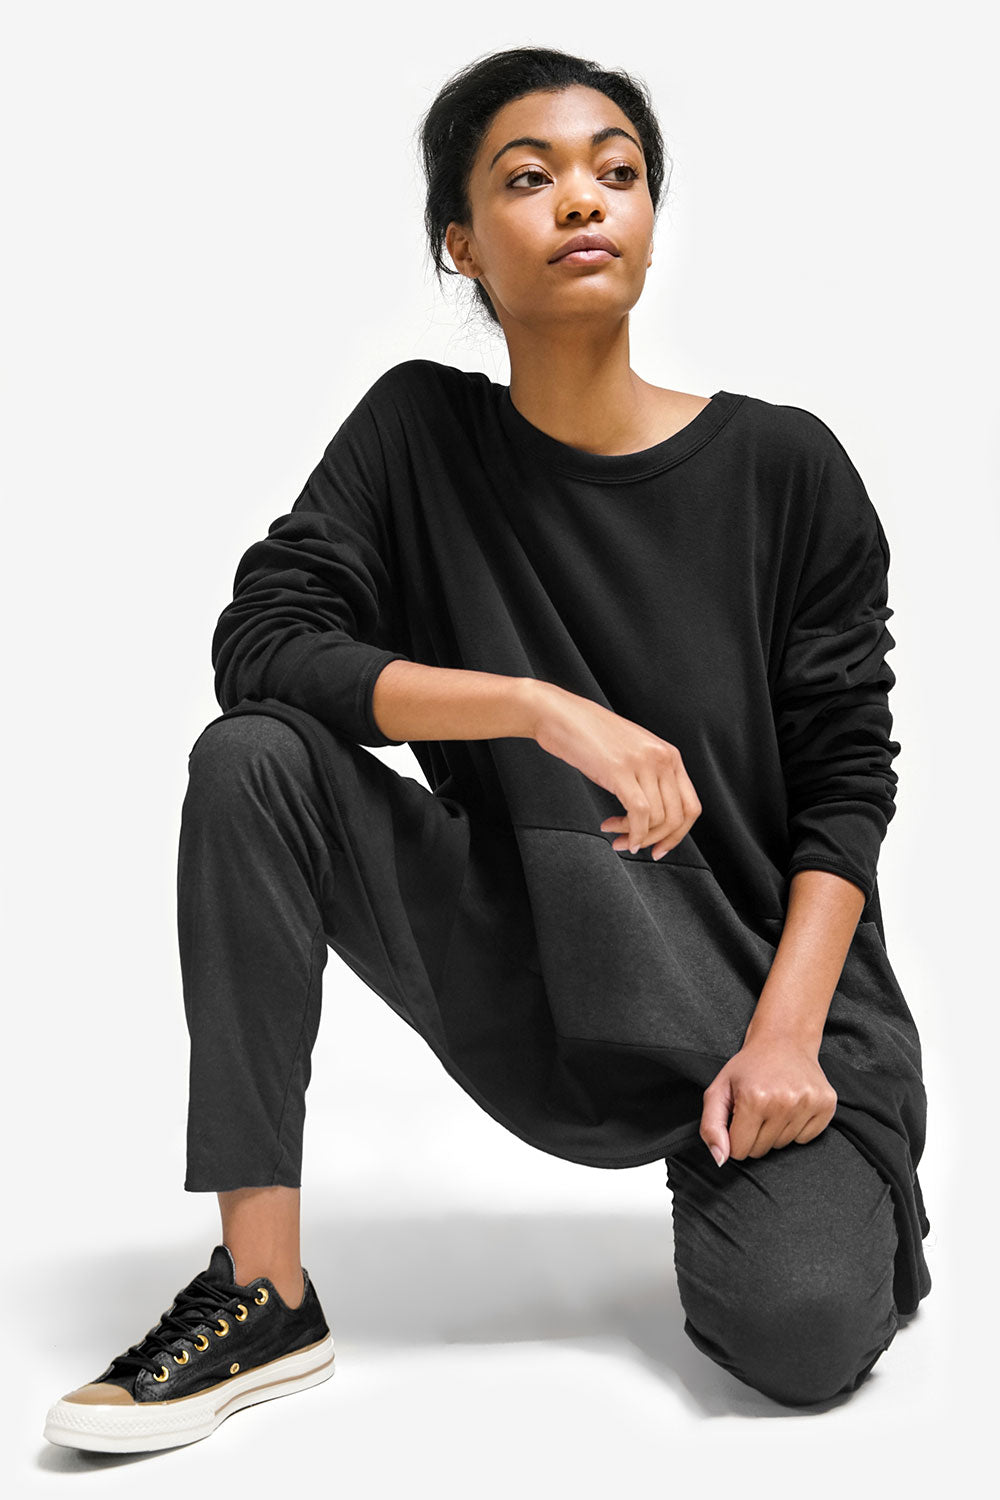 Alabama Chanin Natalie's Pullover Organic Cotton Oversized Top in Black Layered on Model